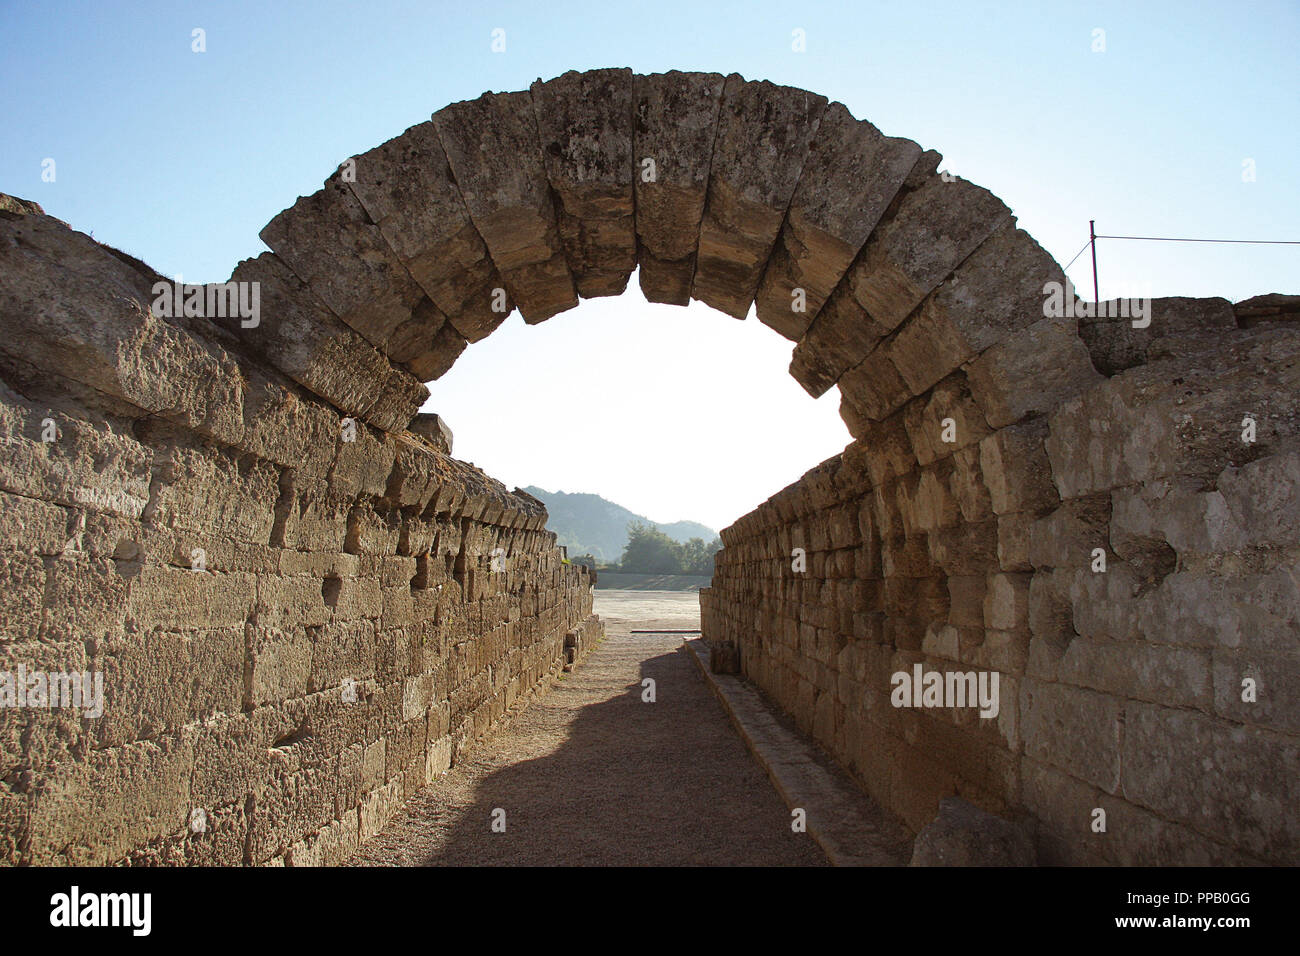 Greek Art. Sanctuary of Olympia. Entrance to olympic stadium. Stone arch. III B.C. The east of archaelogical site.  Elis. Peloponesse. Greece. Europe. - Stock Image